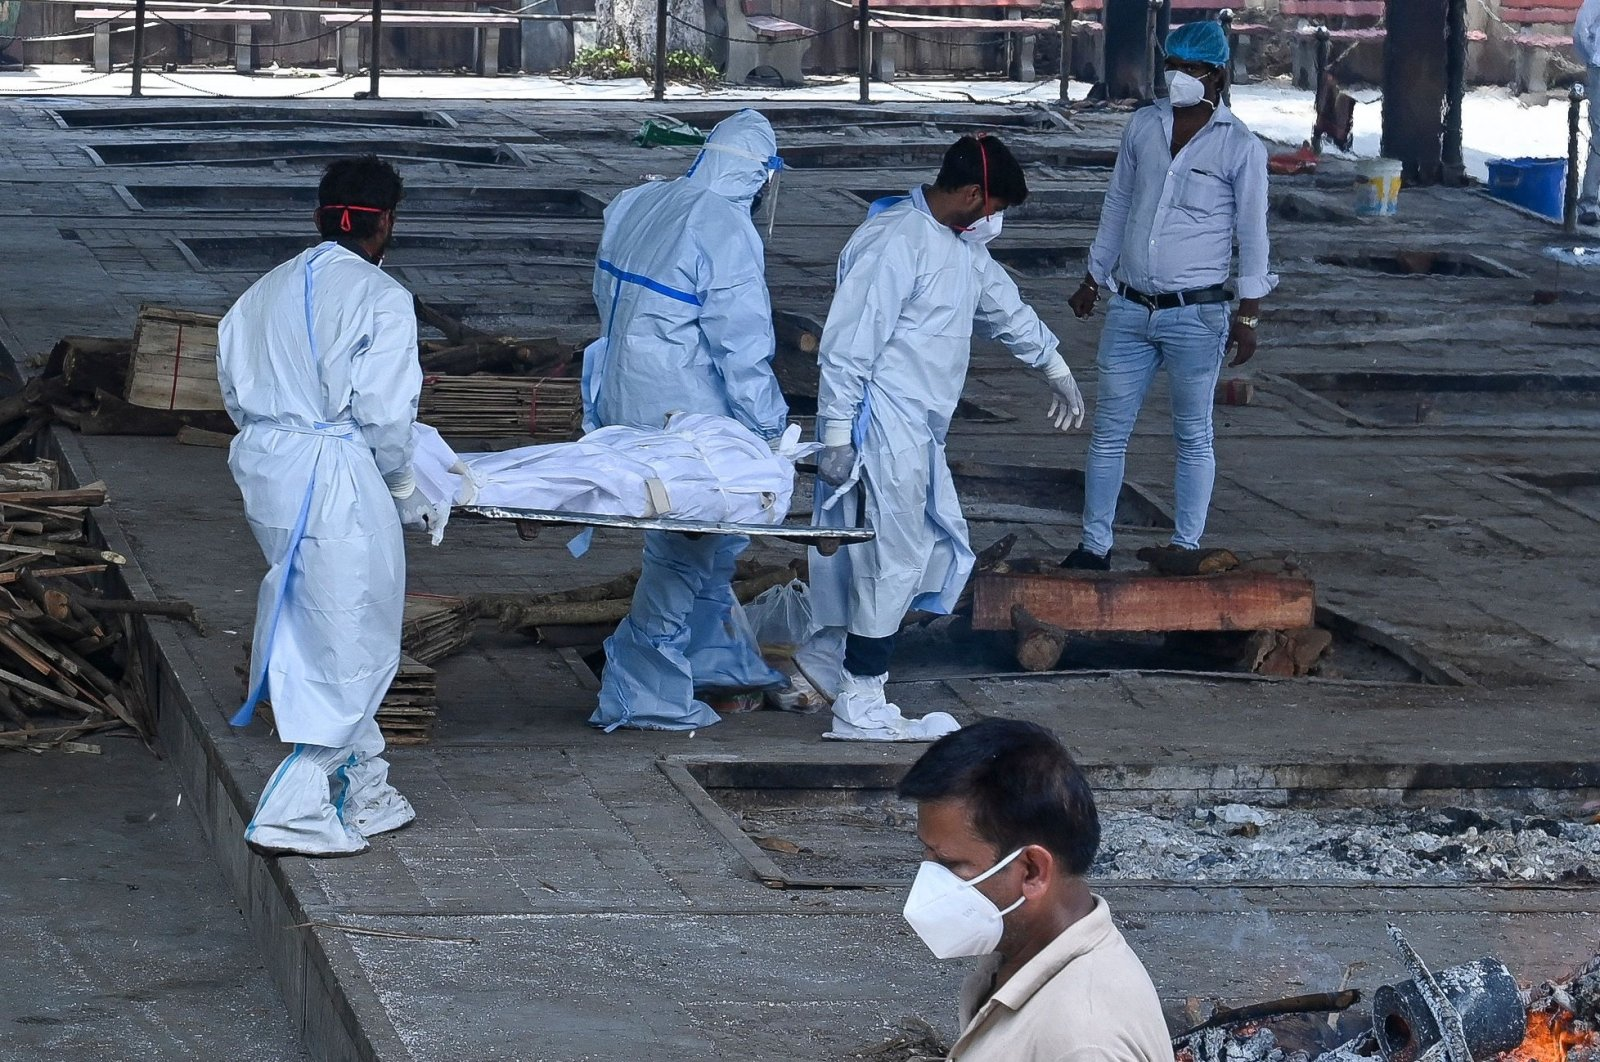 Ambulance staff carry the dead body of a patient who died from COVID-19 for cremation at a crematorium in New Delhi, India, May 21, 2021. (AFP Photo)